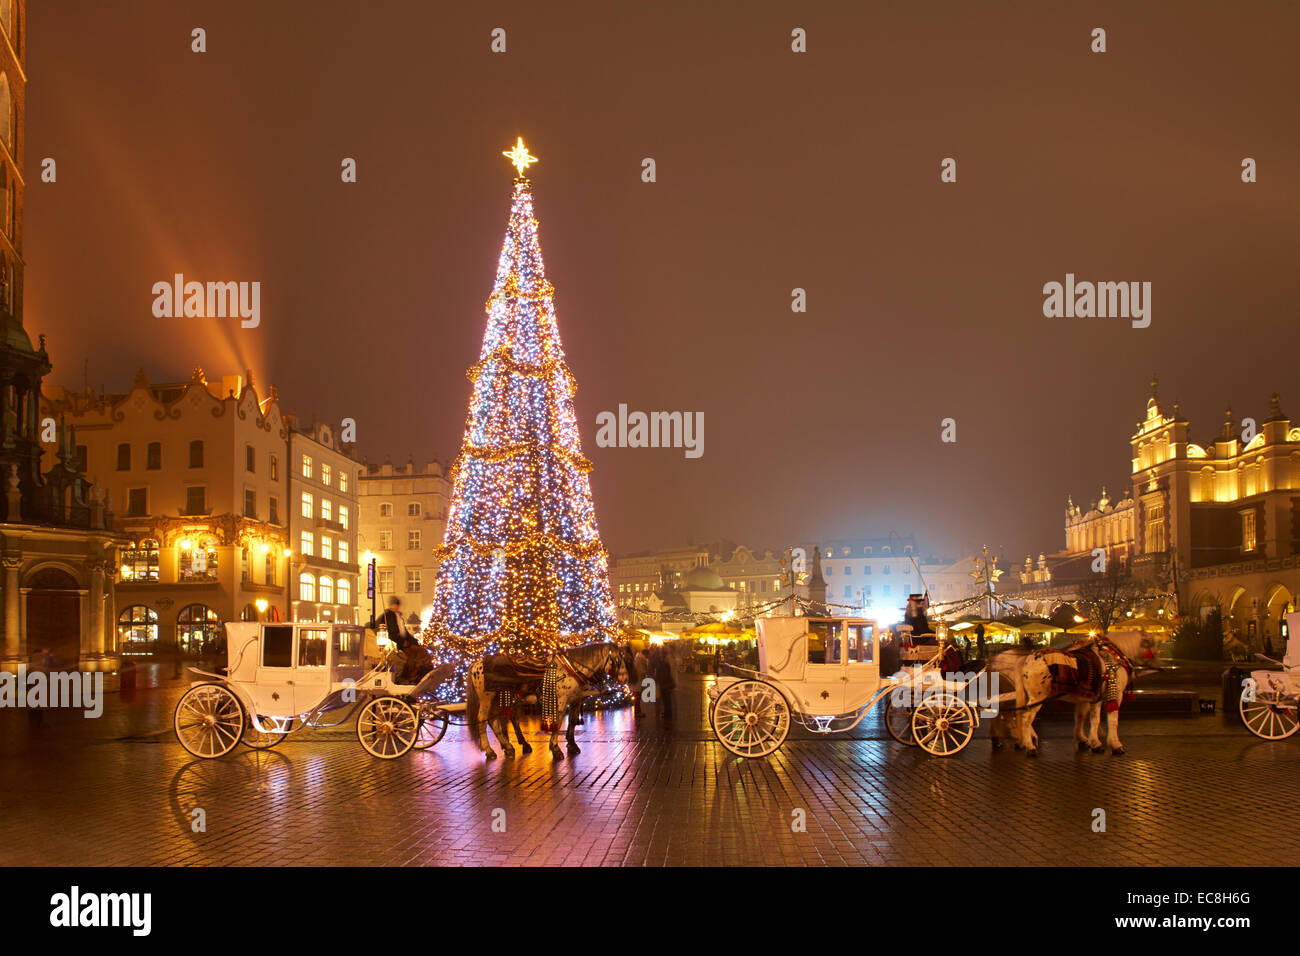 polen krakau weihnachten markt rynek glowny twilight. Black Bedroom Furniture Sets. Home Design Ideas